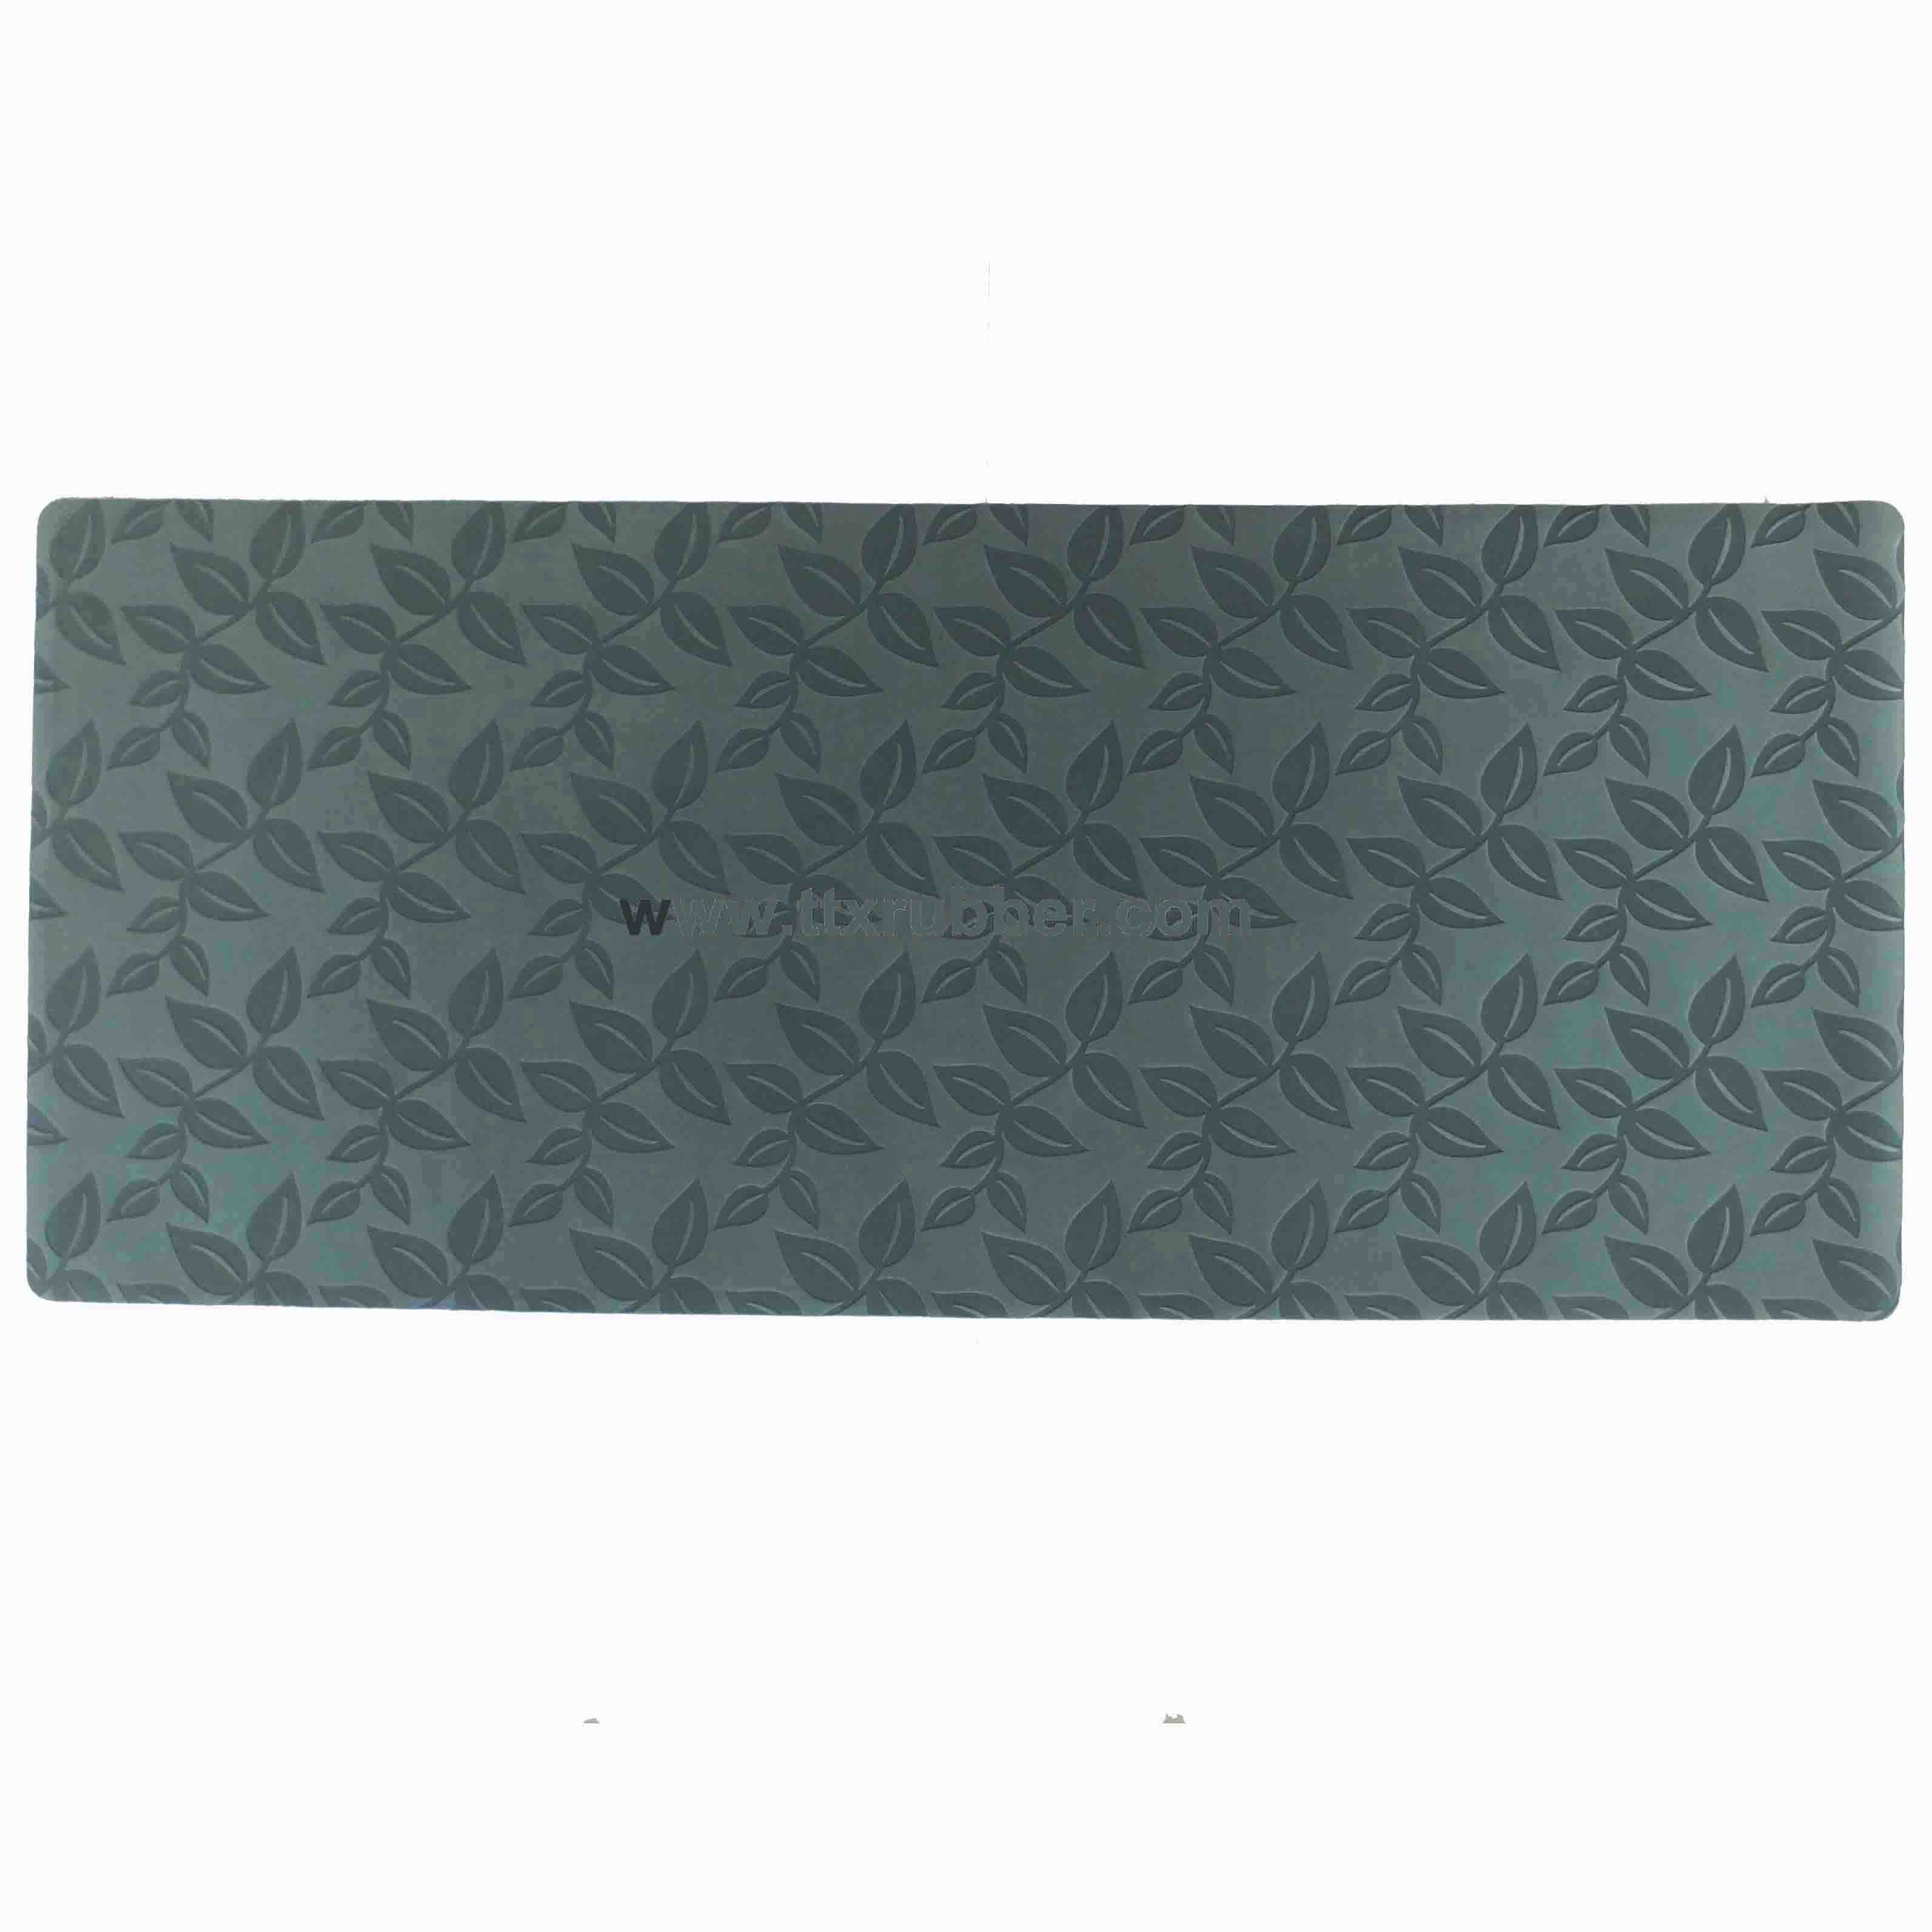 Home And Kitchen Rugs Decorative Non-slip Rubber Backing Doormat Runner  Area Mats - Buy Flocking Floor Mat,Rubber Backed Kitchen Rugs,Decorative ...